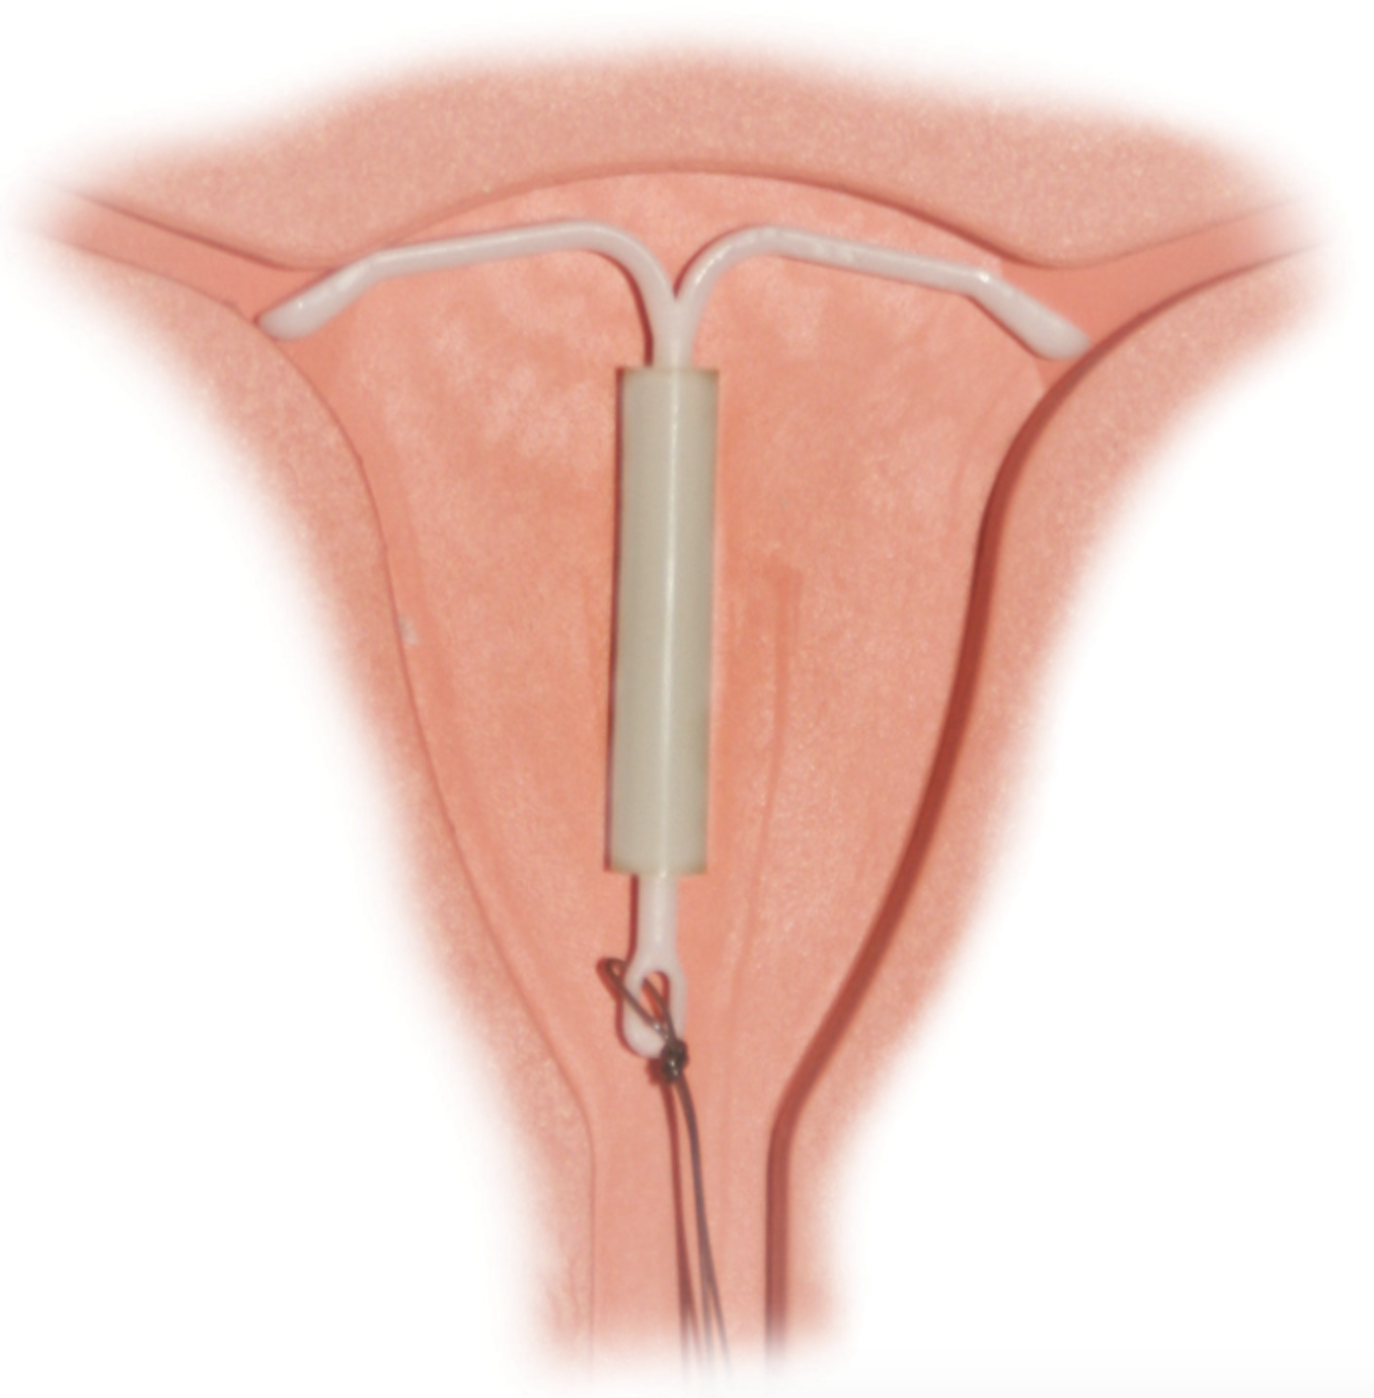 The hormonal IUD uses progesterone to do its spermicidal bidding.